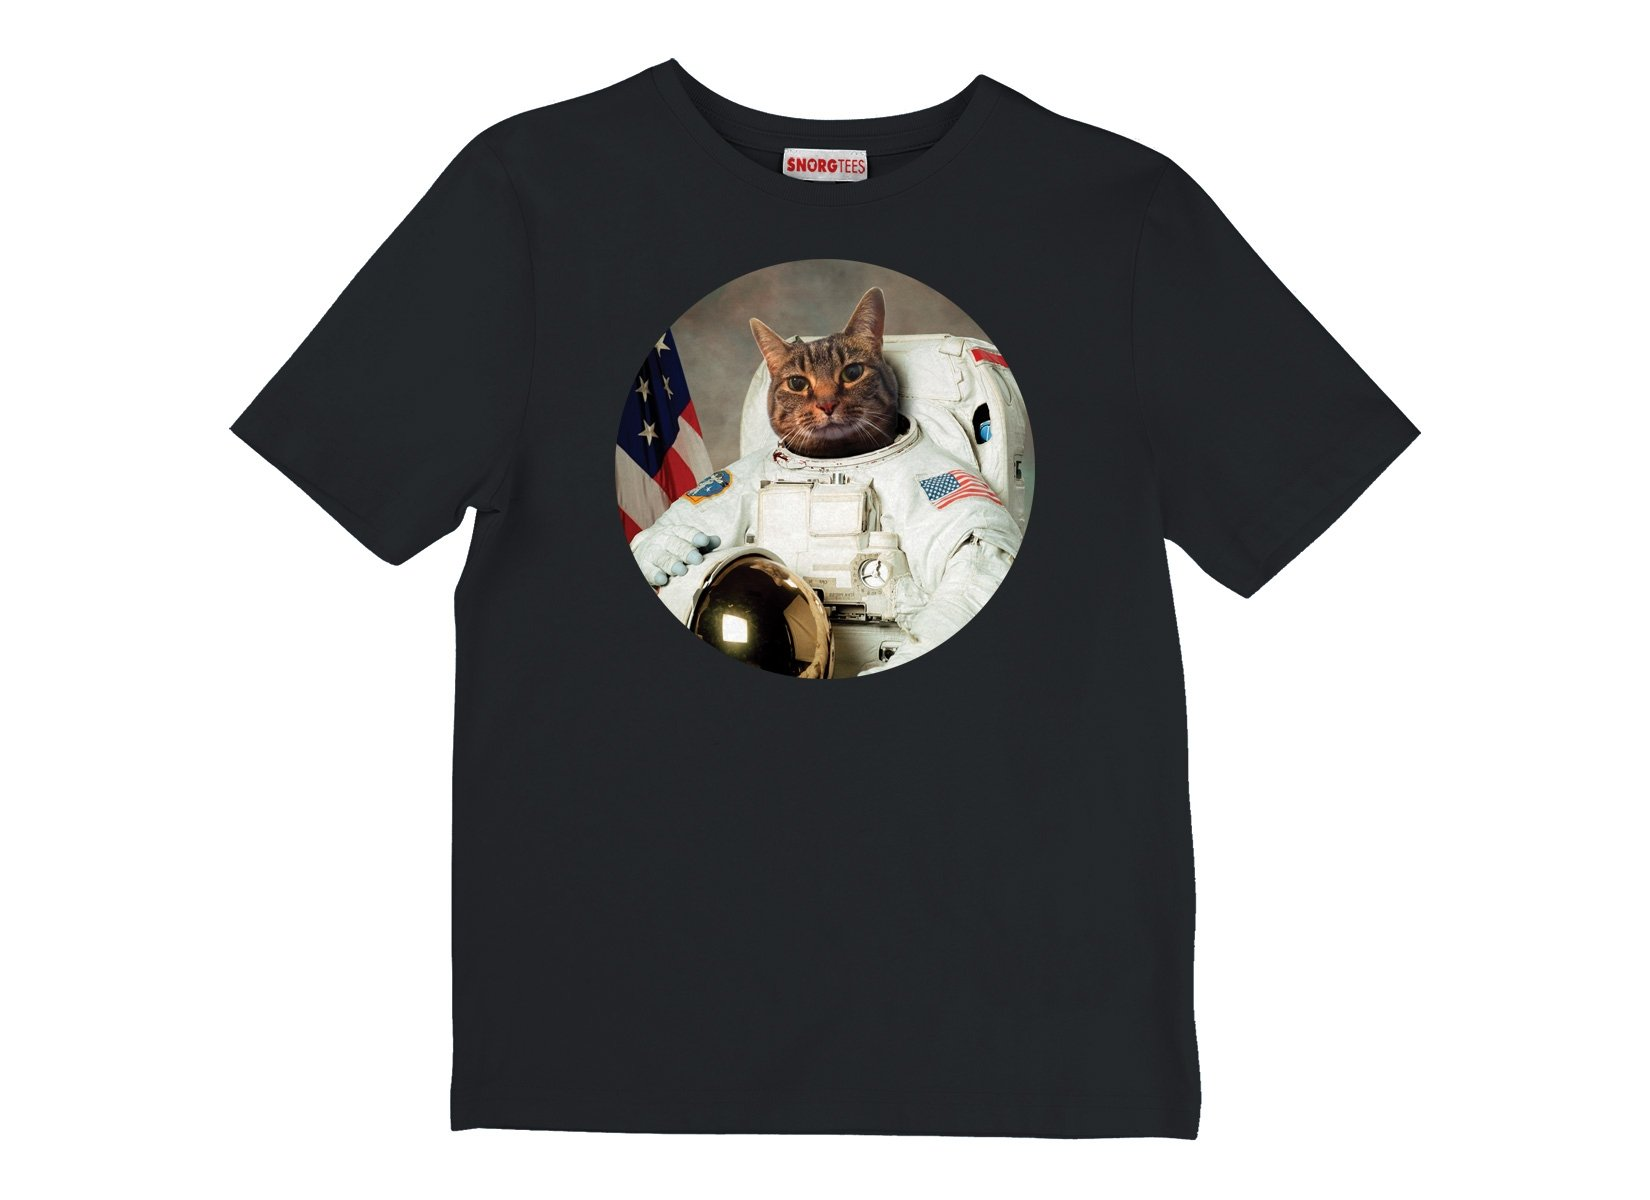 Astrocat on Kids T-Shirt